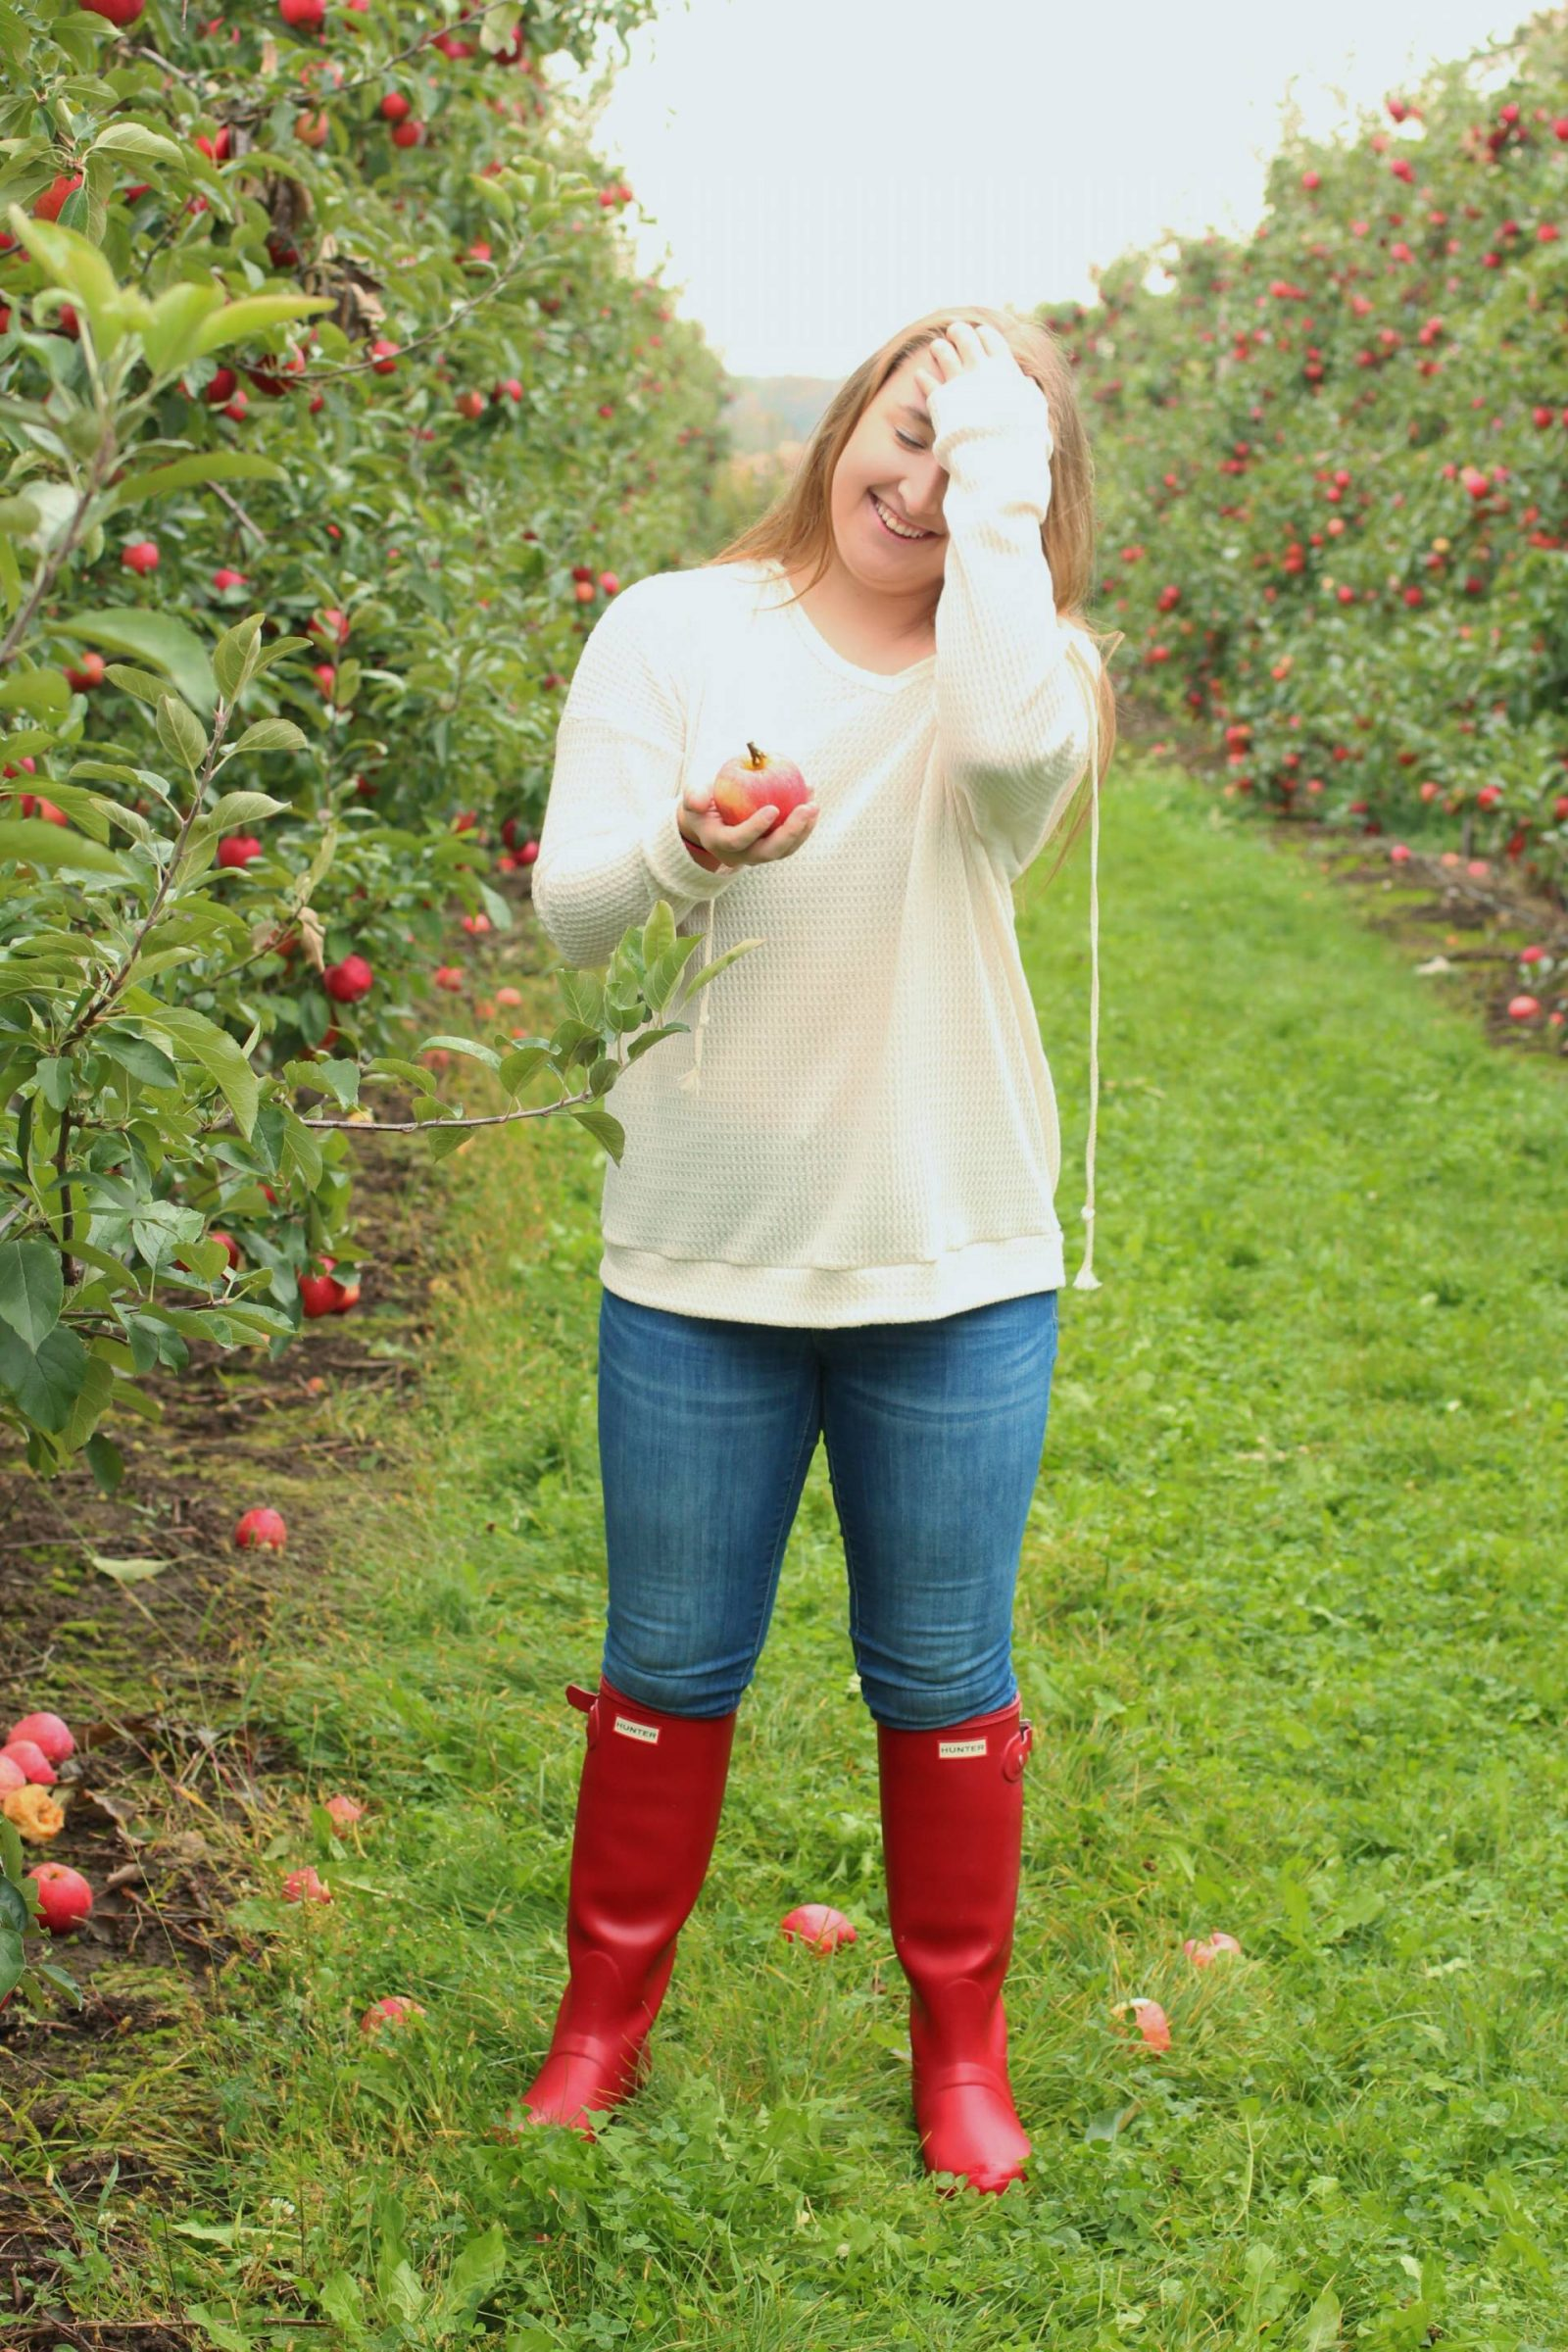 Picking some Apples - Pearls and Polkadots